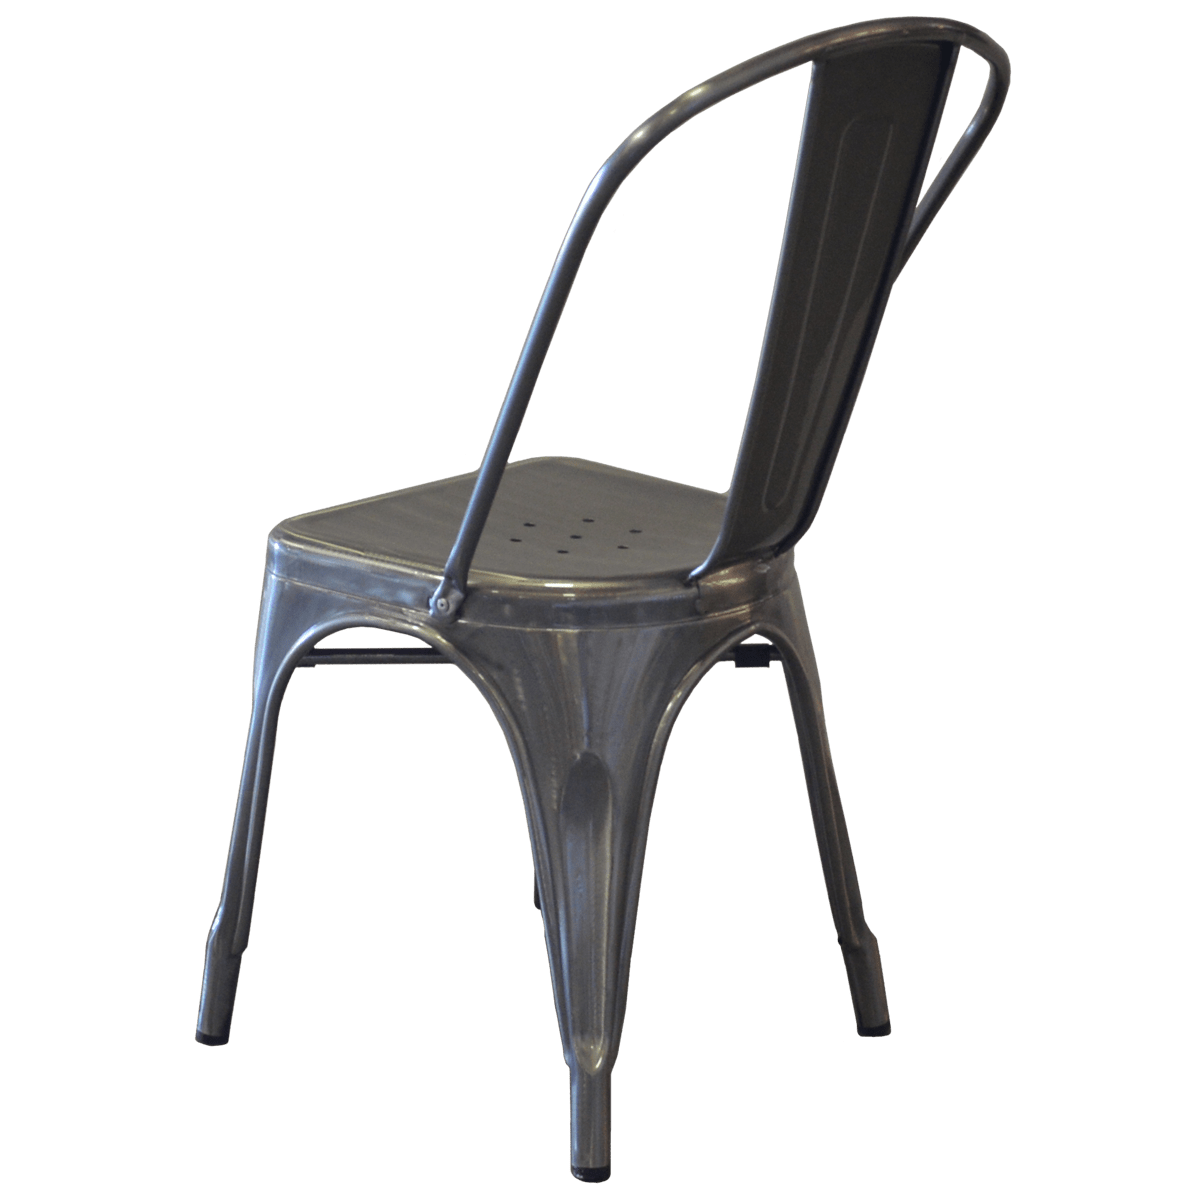 chair design back angle outdoor wooden rocking gunmetal dining chairs celebrations party rentals